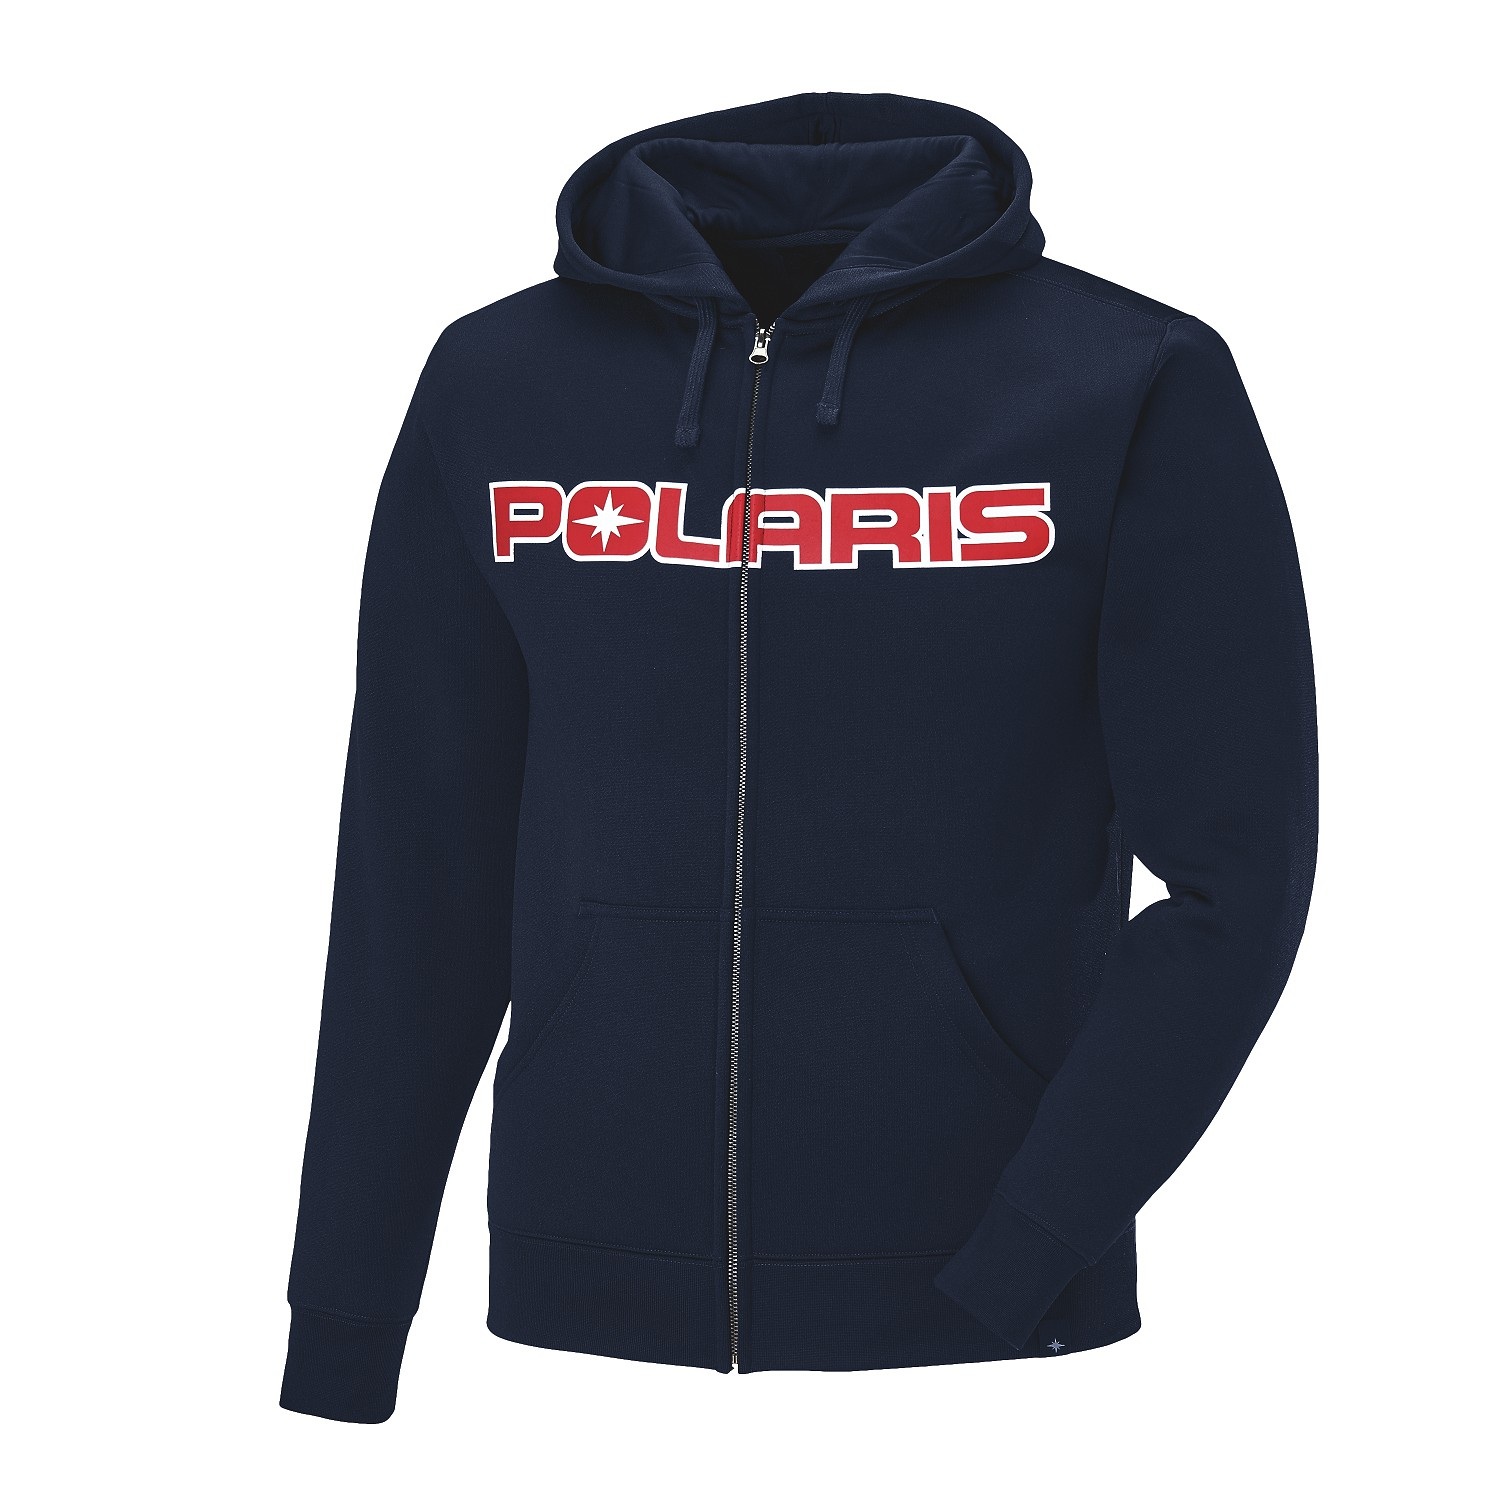 Men's Full-Zip Core Hoodie Sweatshirt with Polaris® Logo, Navy